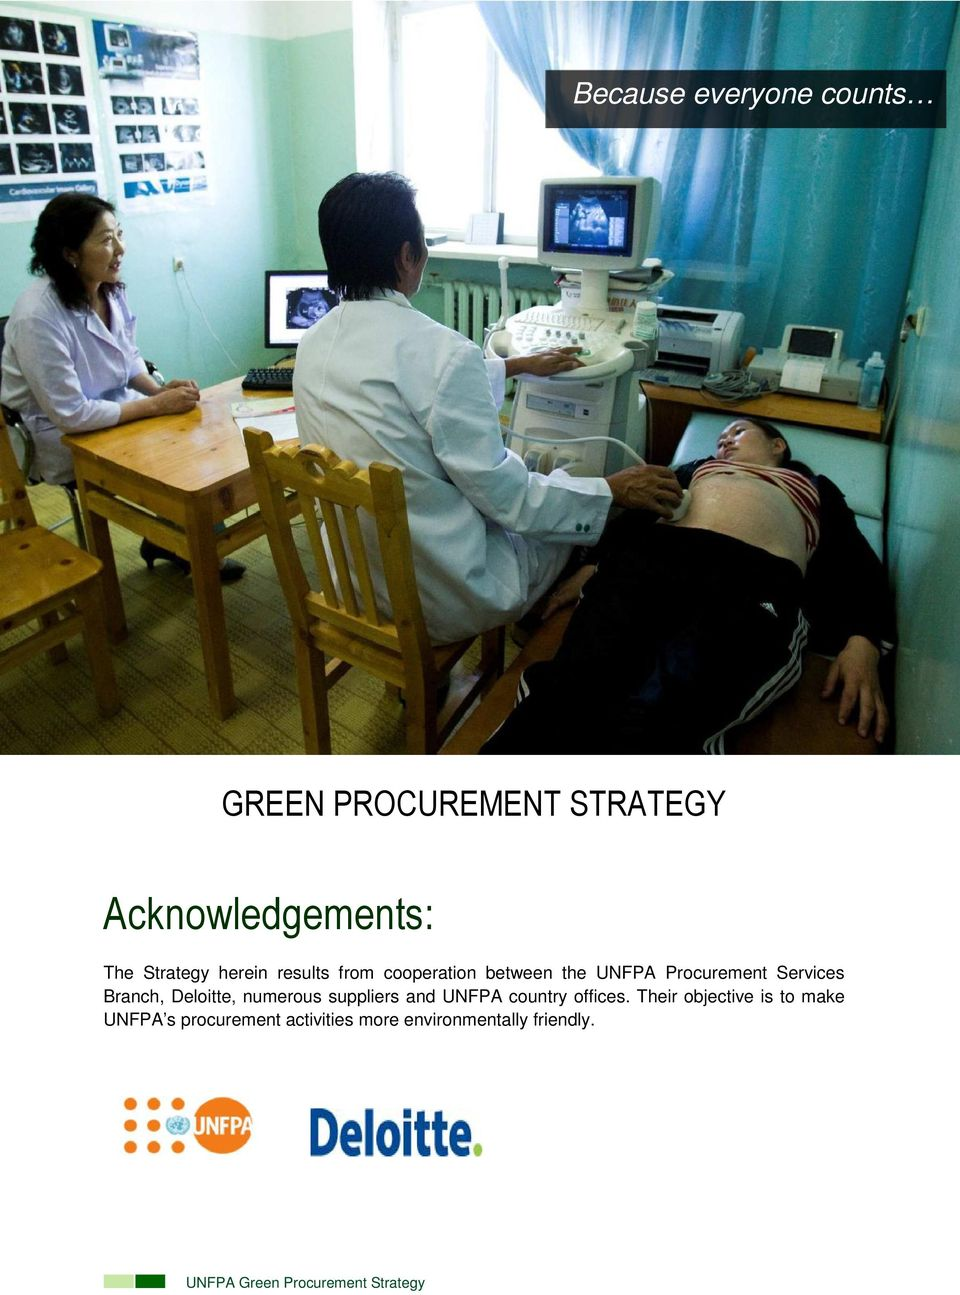 Procurement Services Branch, Deloitte, numerous suppliers and UNFPA country